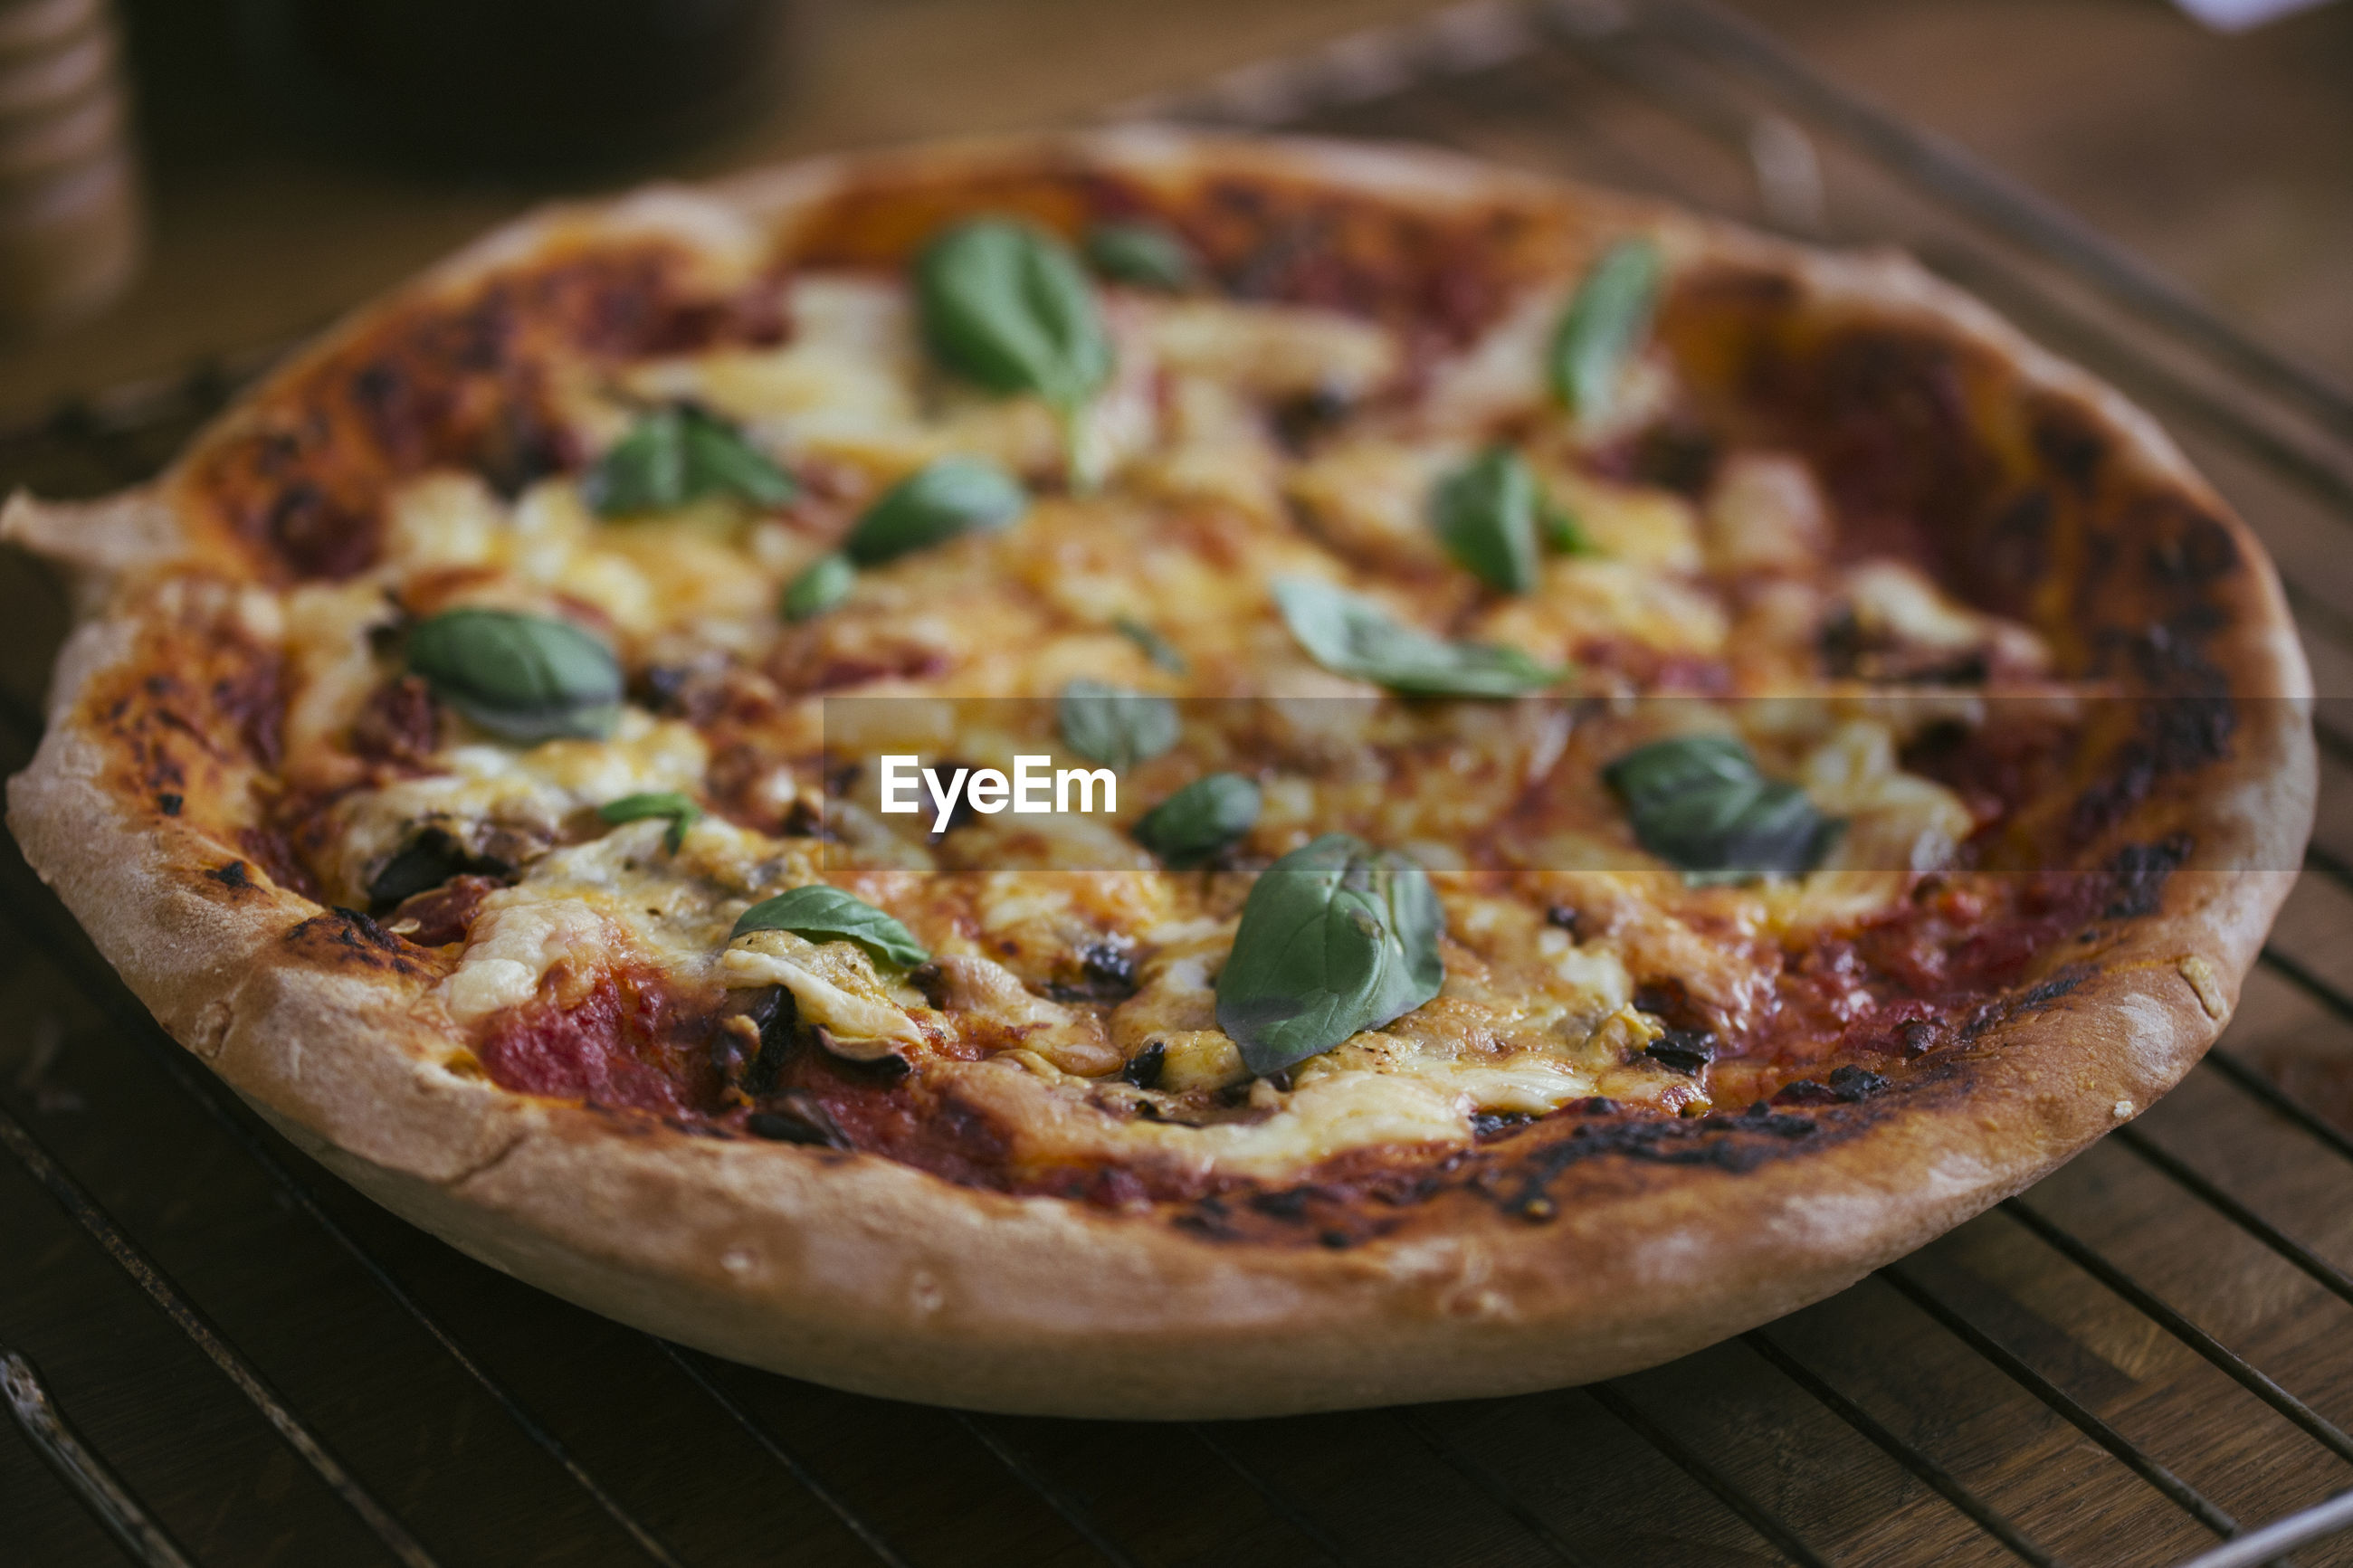 Close-up of pizza on tray